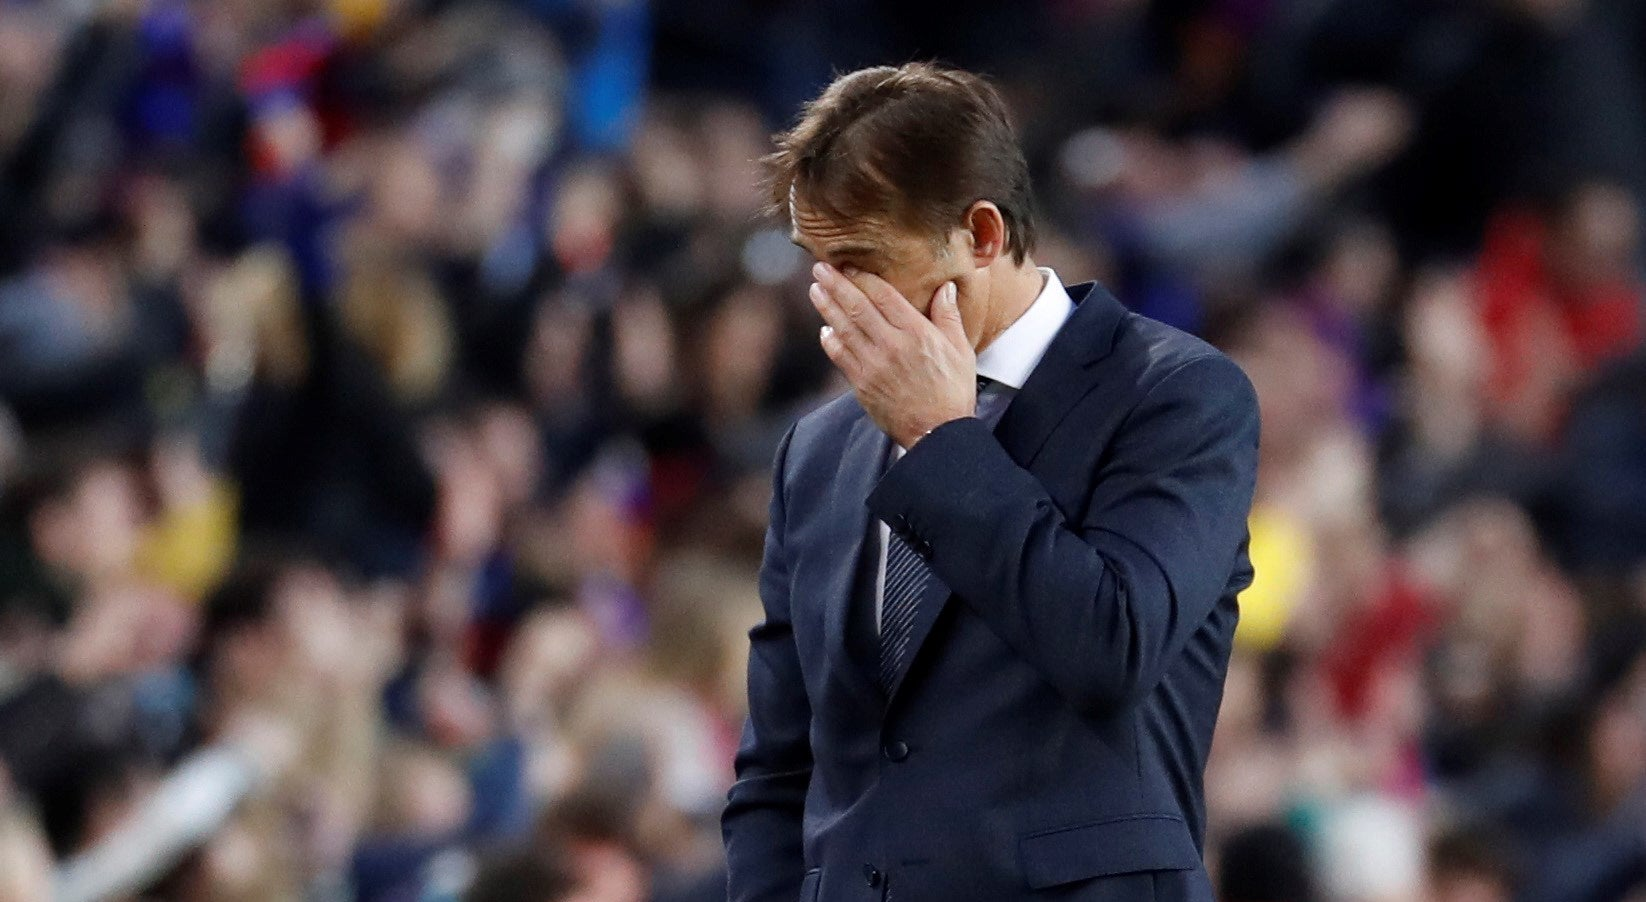 Julen Lopetegui está a horas do adeus ao Real Madrid